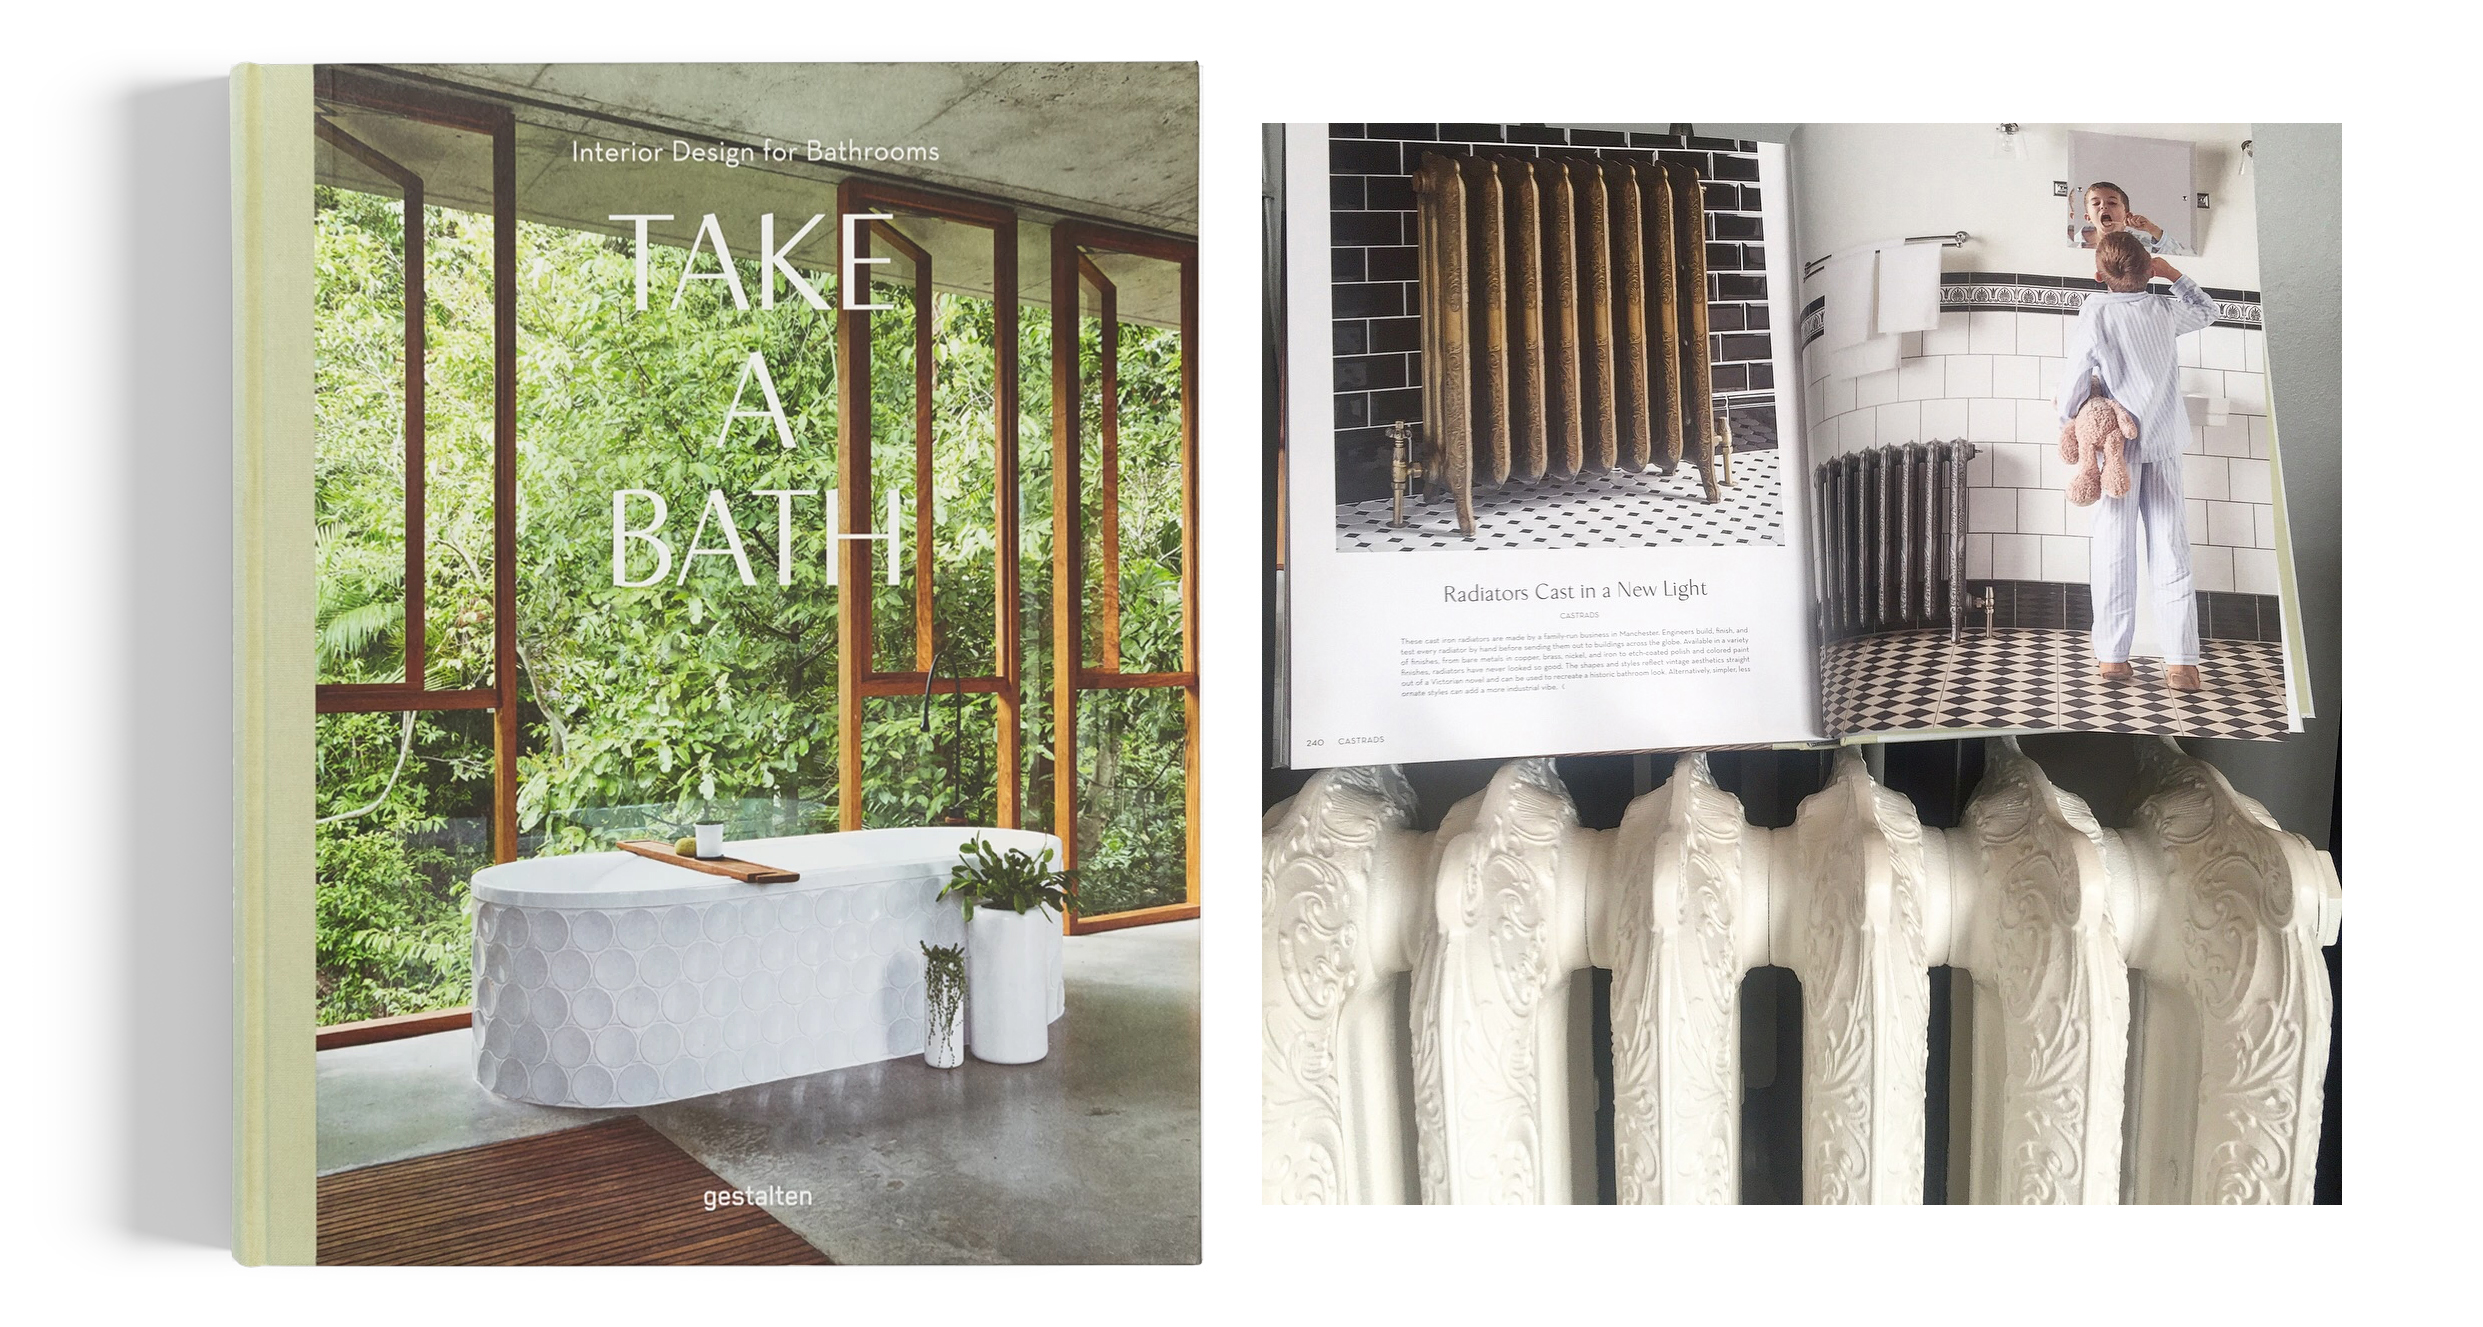 Take a Bath, book. Interior design for bathrooms. Published by Gestalten. Free standing bath on cover with glass wall and jungle outside. Ornate cast iron radiators on second image.